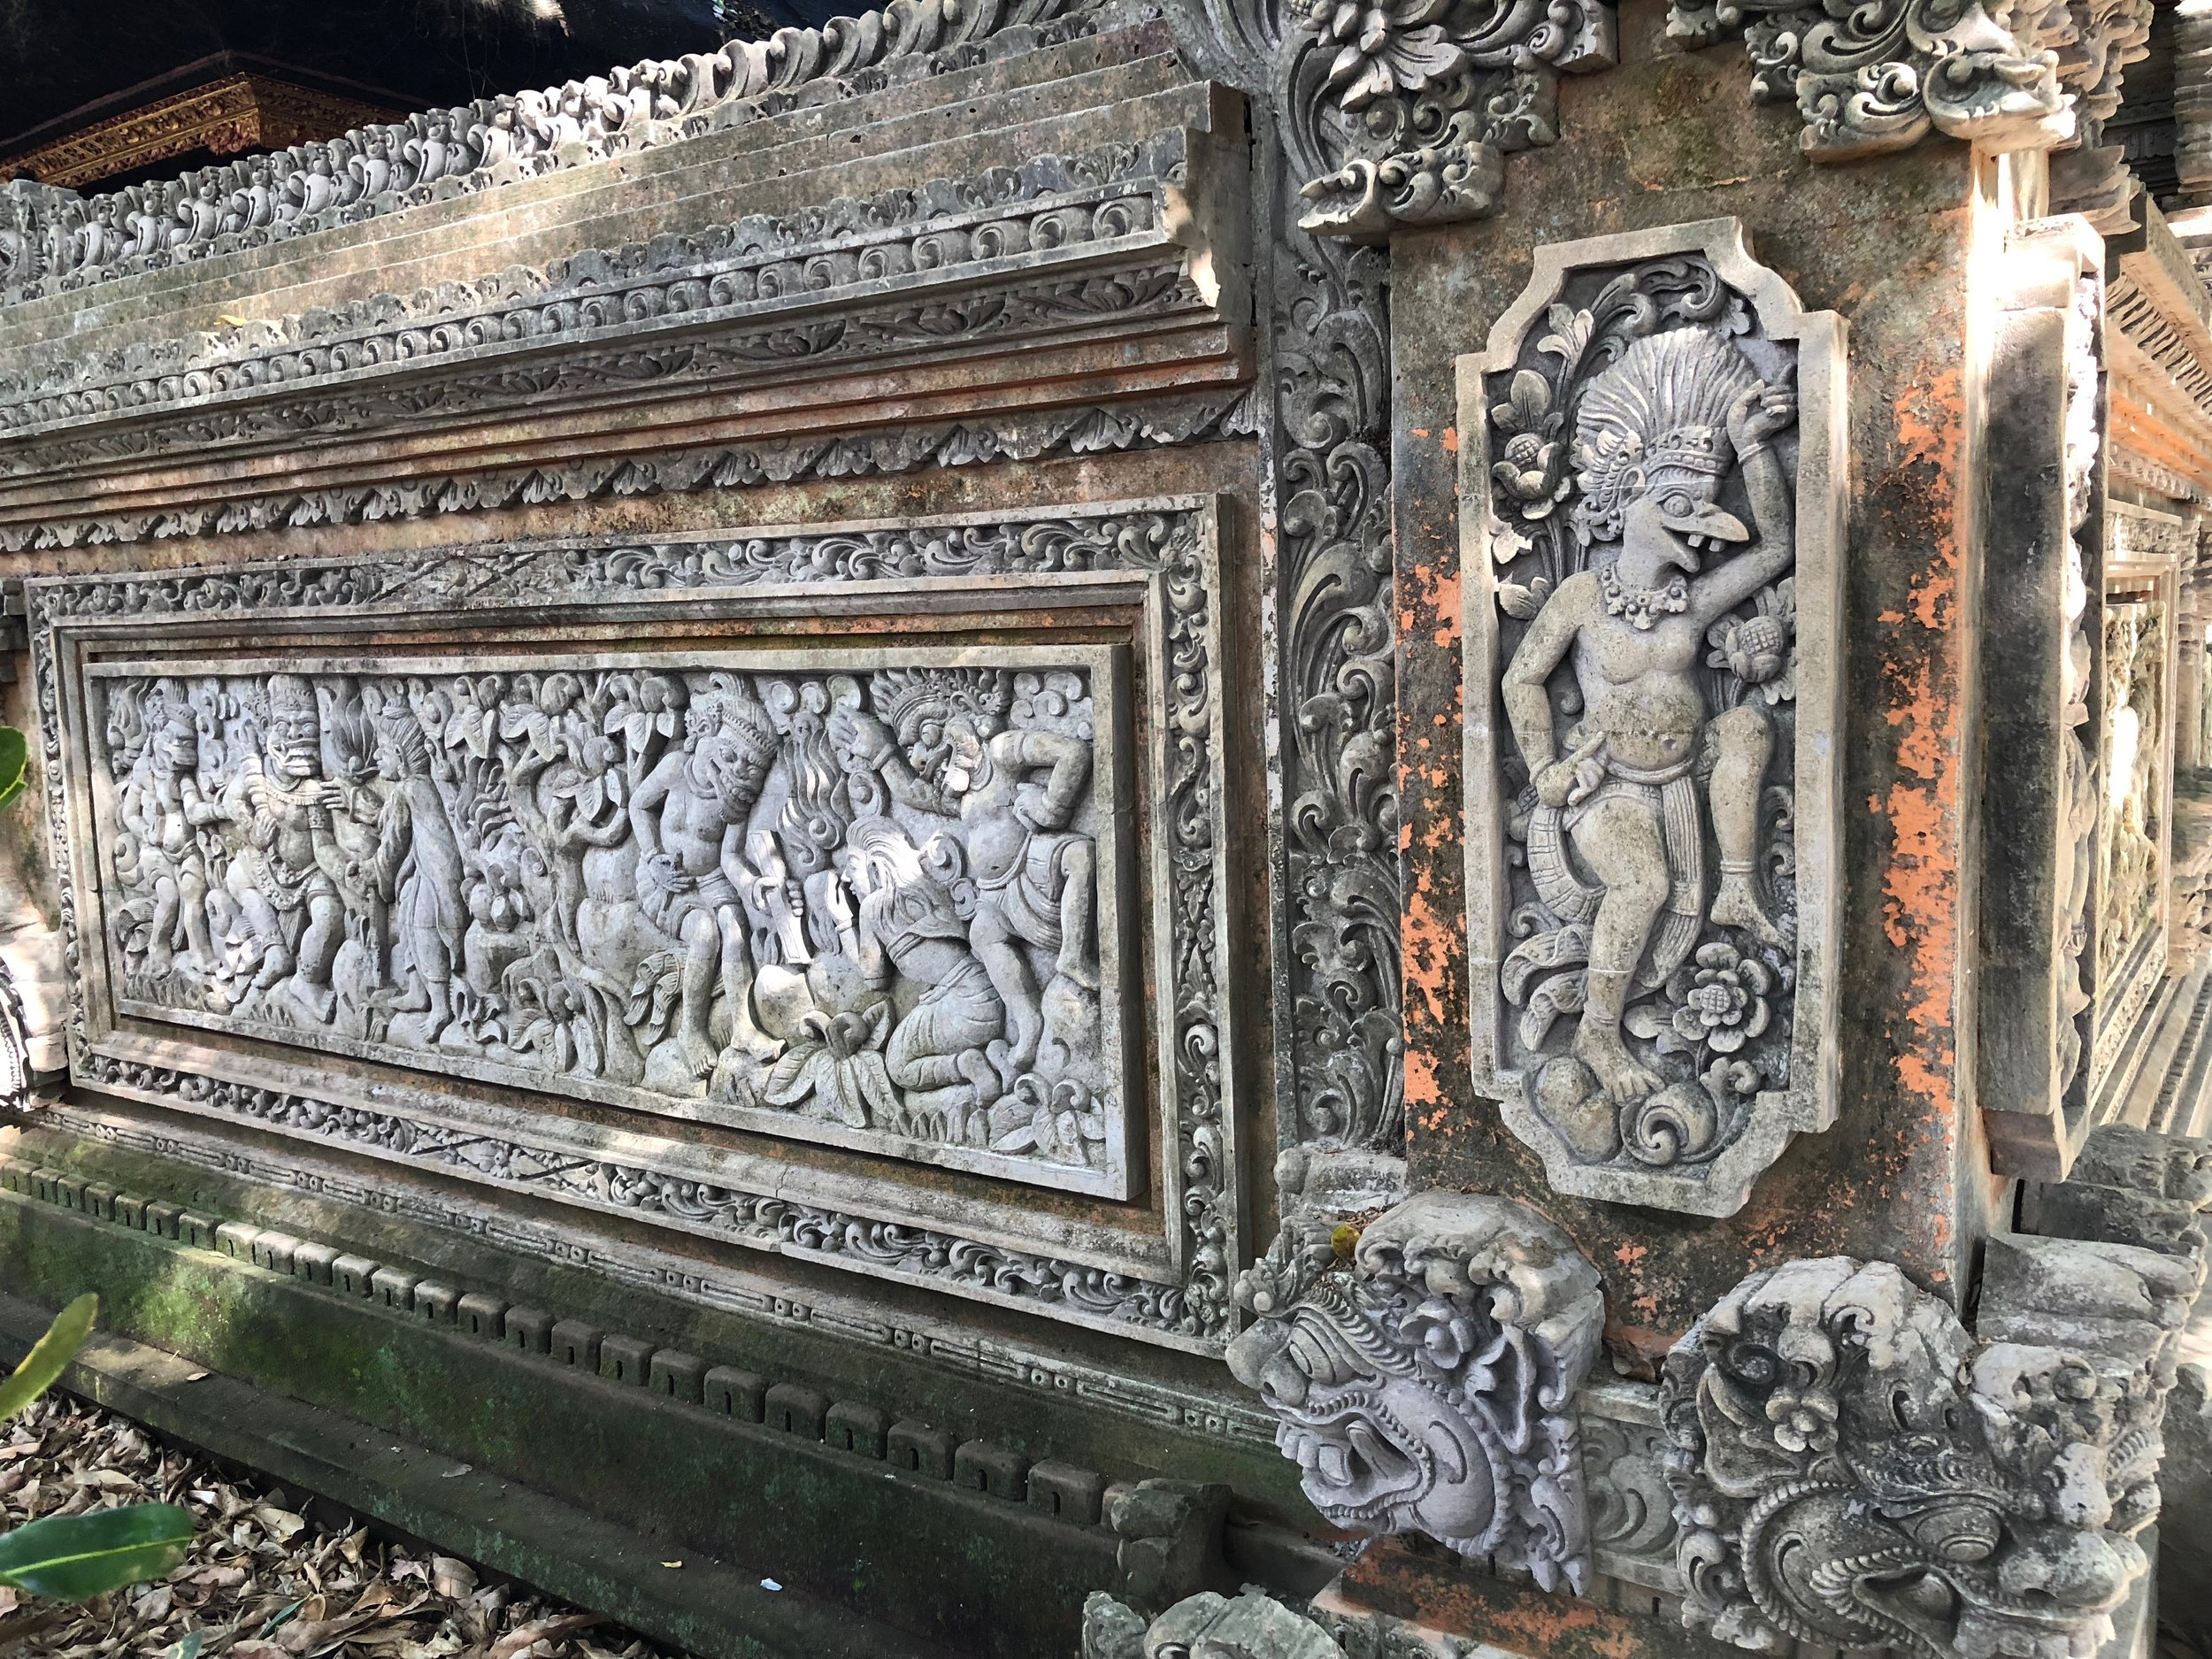 You can skirt around the exterior of the pura dalem and admire the bas reliefs